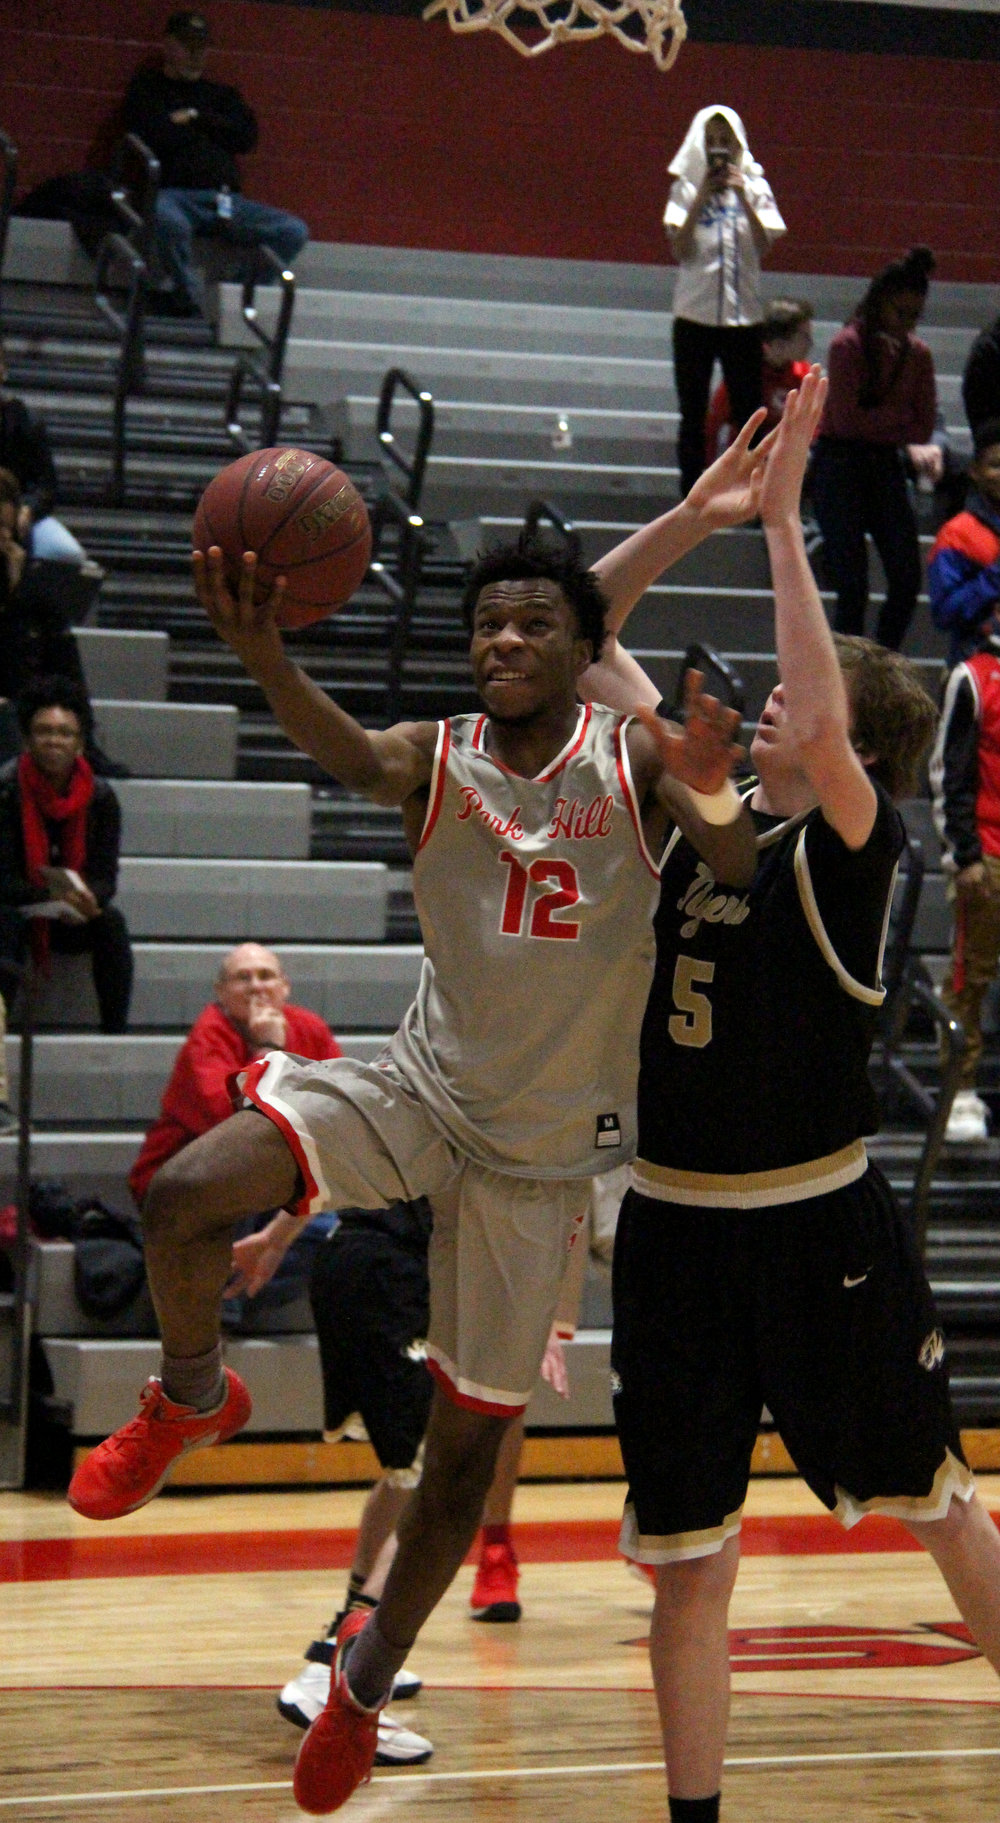 ROSS MARTIN/Citizen photo Park Hill senior guard Dru Smith (12) goes up for a layup against Lee's Summit on Friday, Jan. 27 at Park Hill High School in Kansas City, Mo.